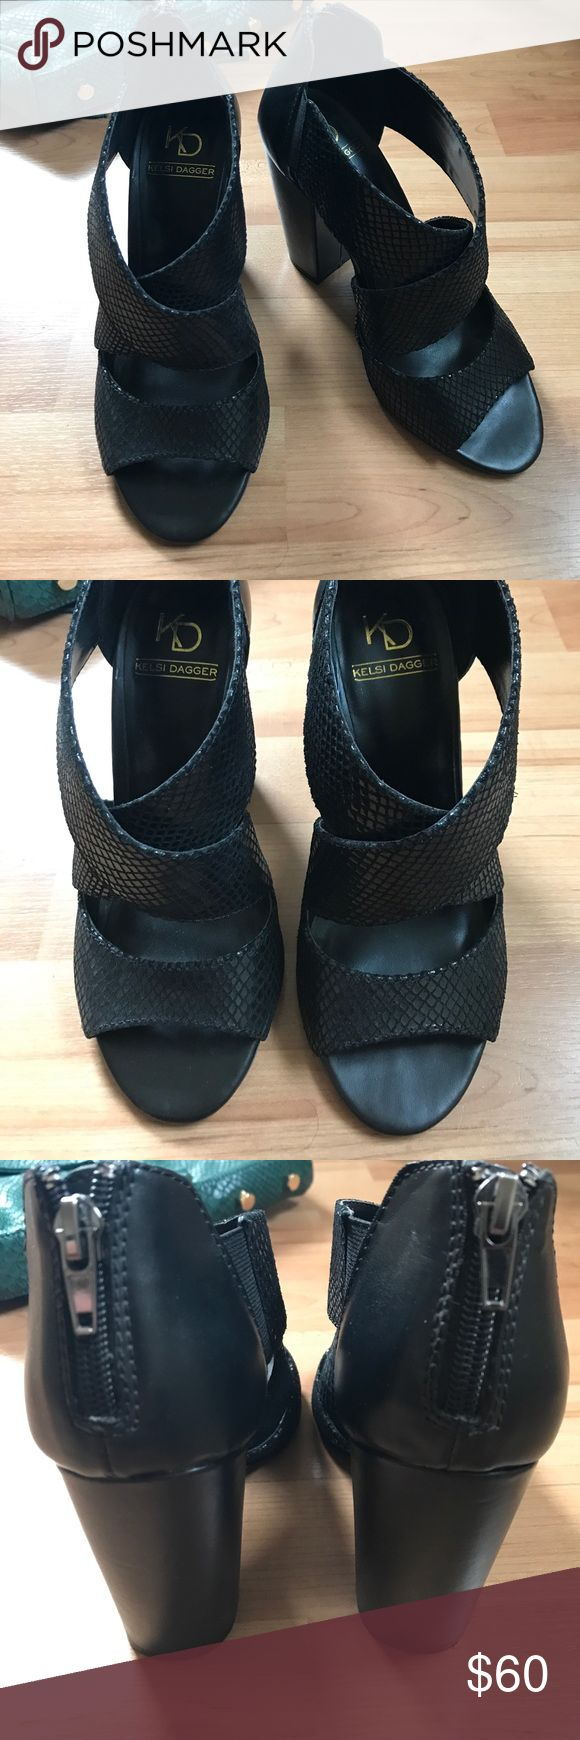 Kelsi Dagger Black Faux Snakeskin Open Toe Sandals Pre-loved Kelsi Dagger black faux snakeskin open toe chunky heel sandals in size 6.5. Back zippers are hard to open. Comes from a pet and smoke-free home. Kelsi Dagger Shoes Heels